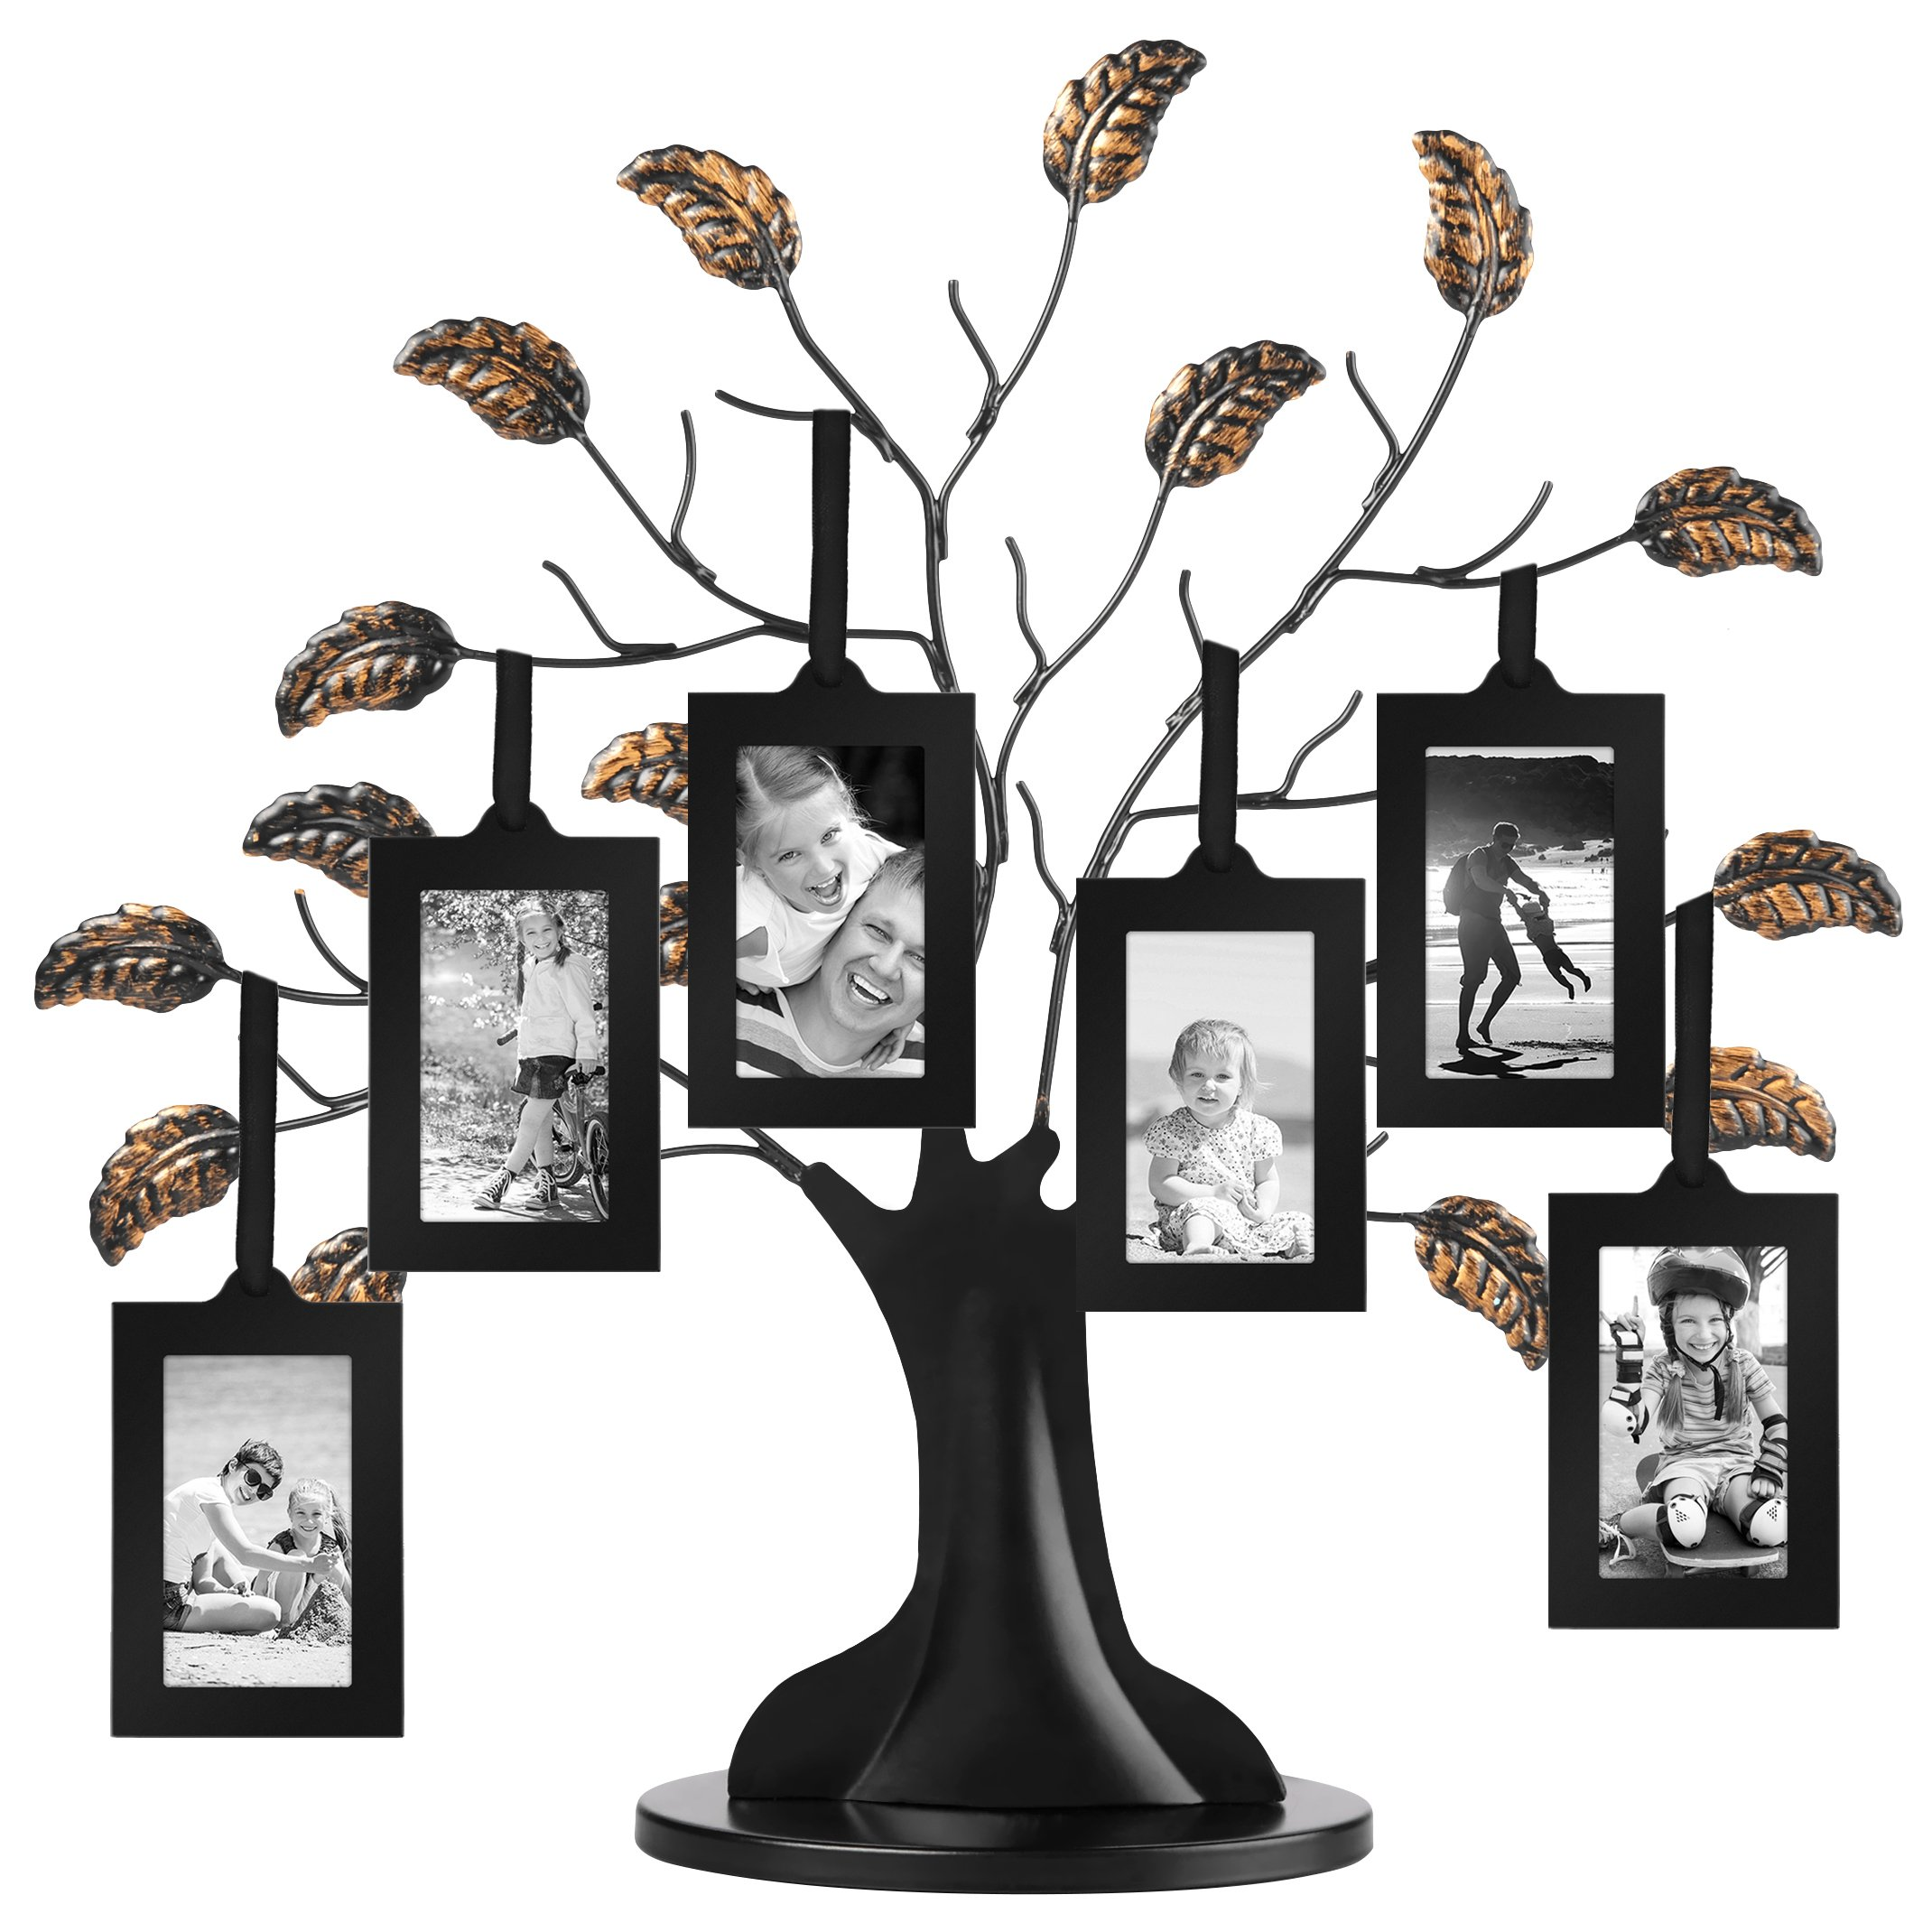 Americanflat Bronze Family Tree Frame with 6 Hanging Picture Frames Each Sized 2''x3'' with Adjustable Ribbon Tassels by Americanflat